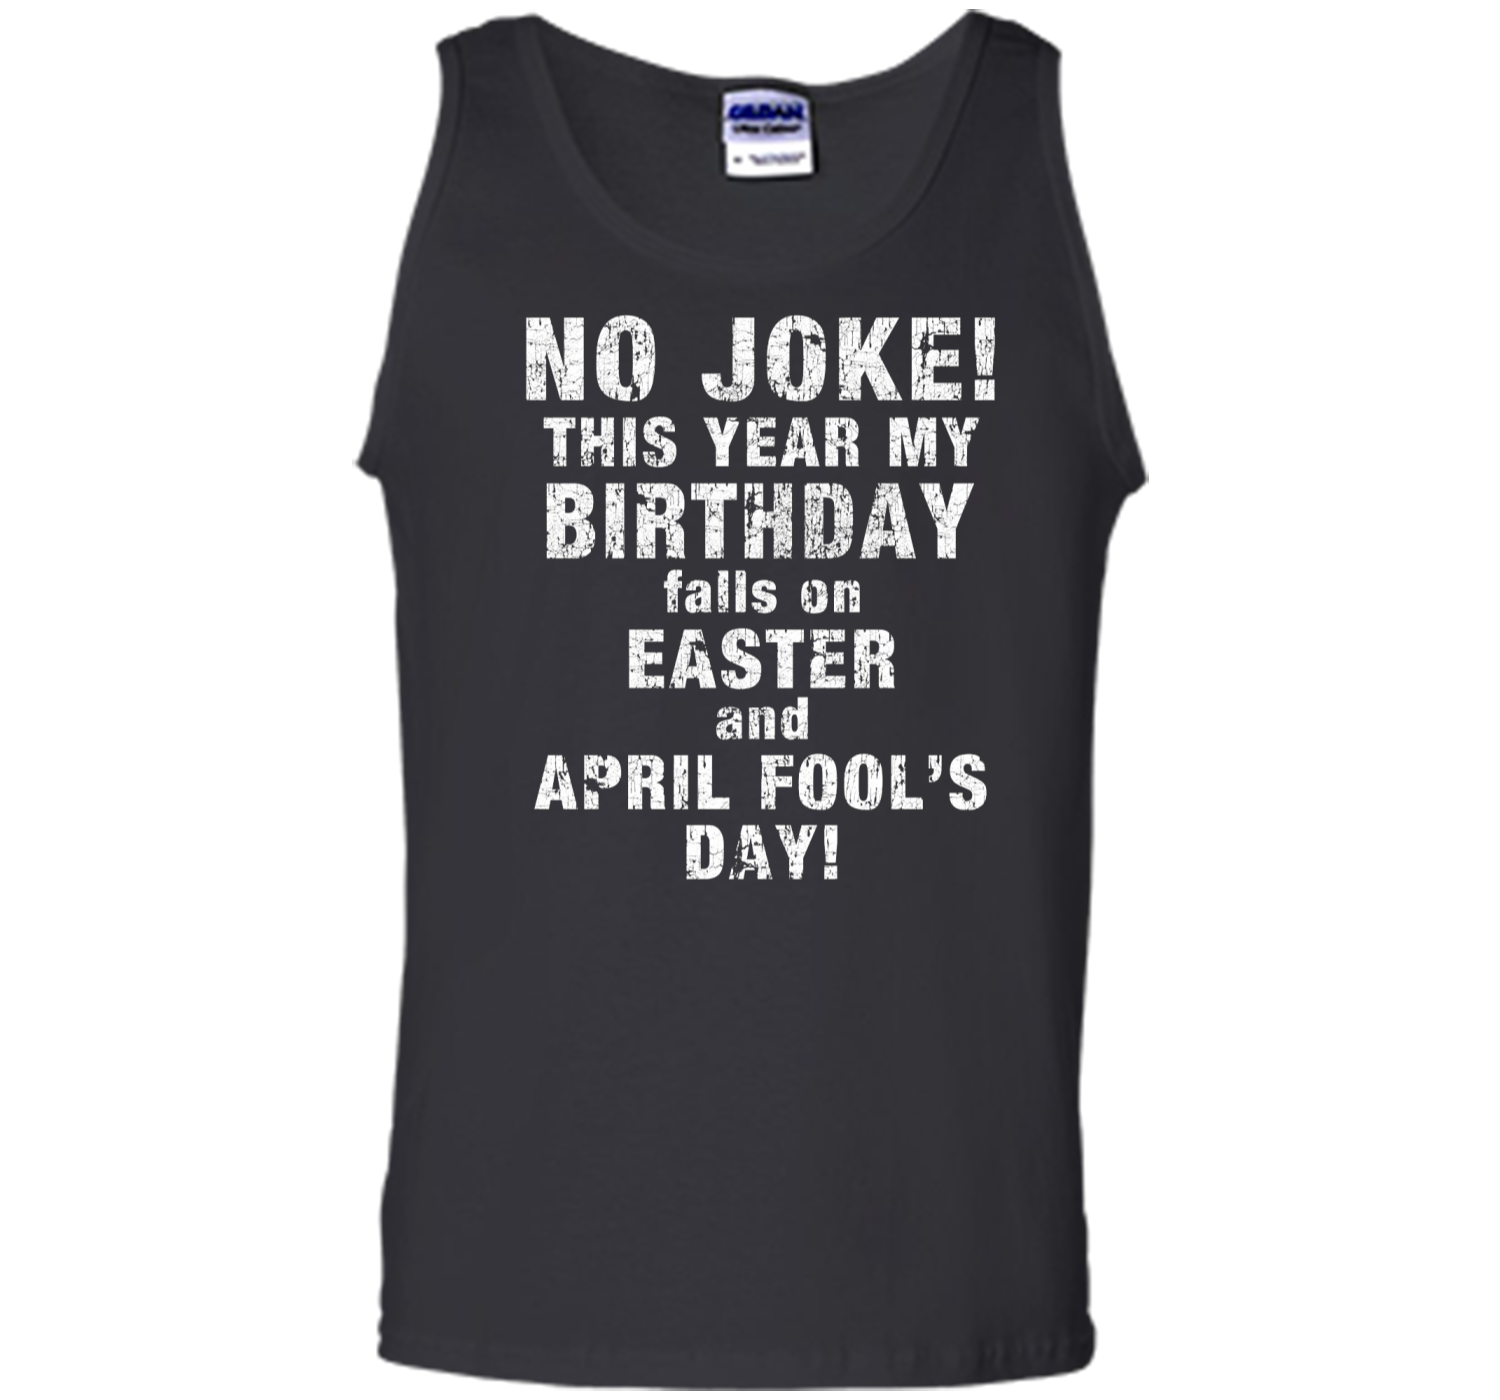 birthday on easter april fools day t shirt for men women